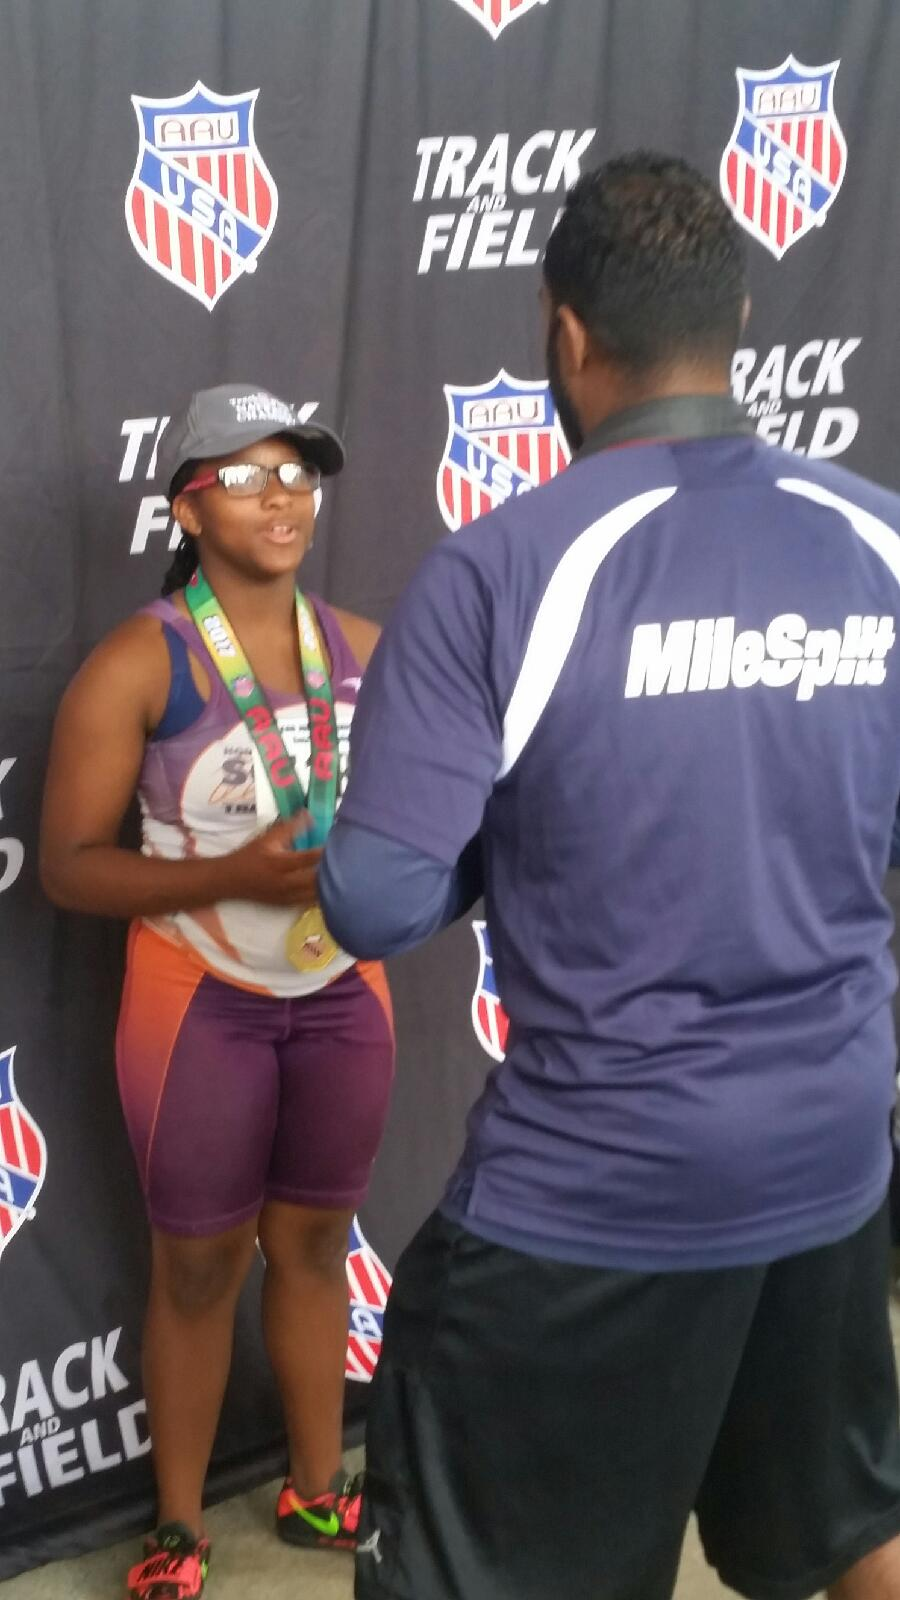 Octavia wins another gold in shot put